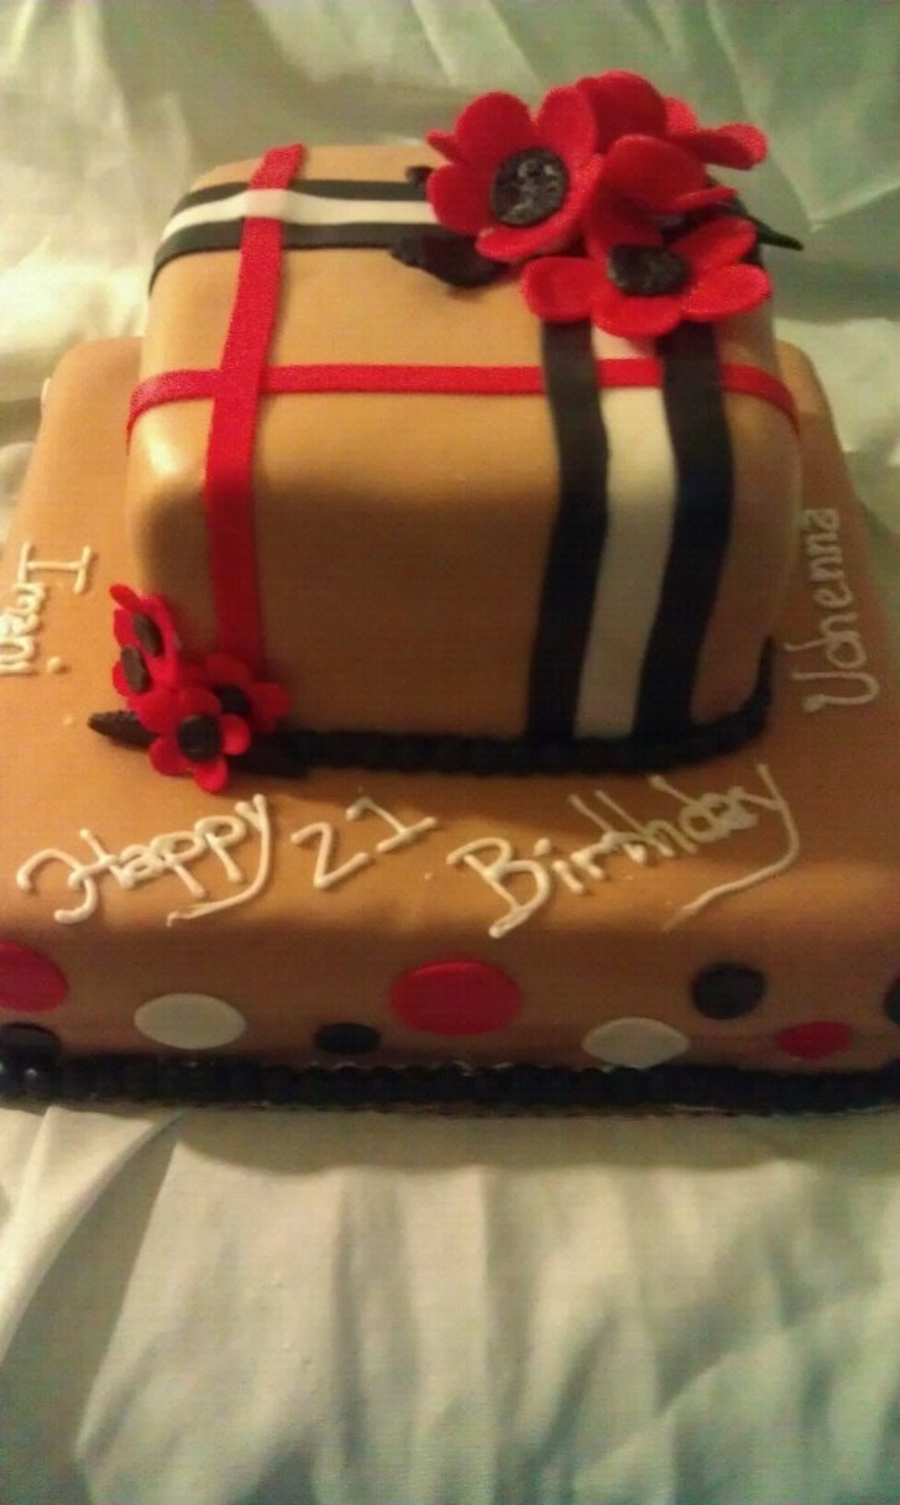 Burberry Inspired on Cake Central